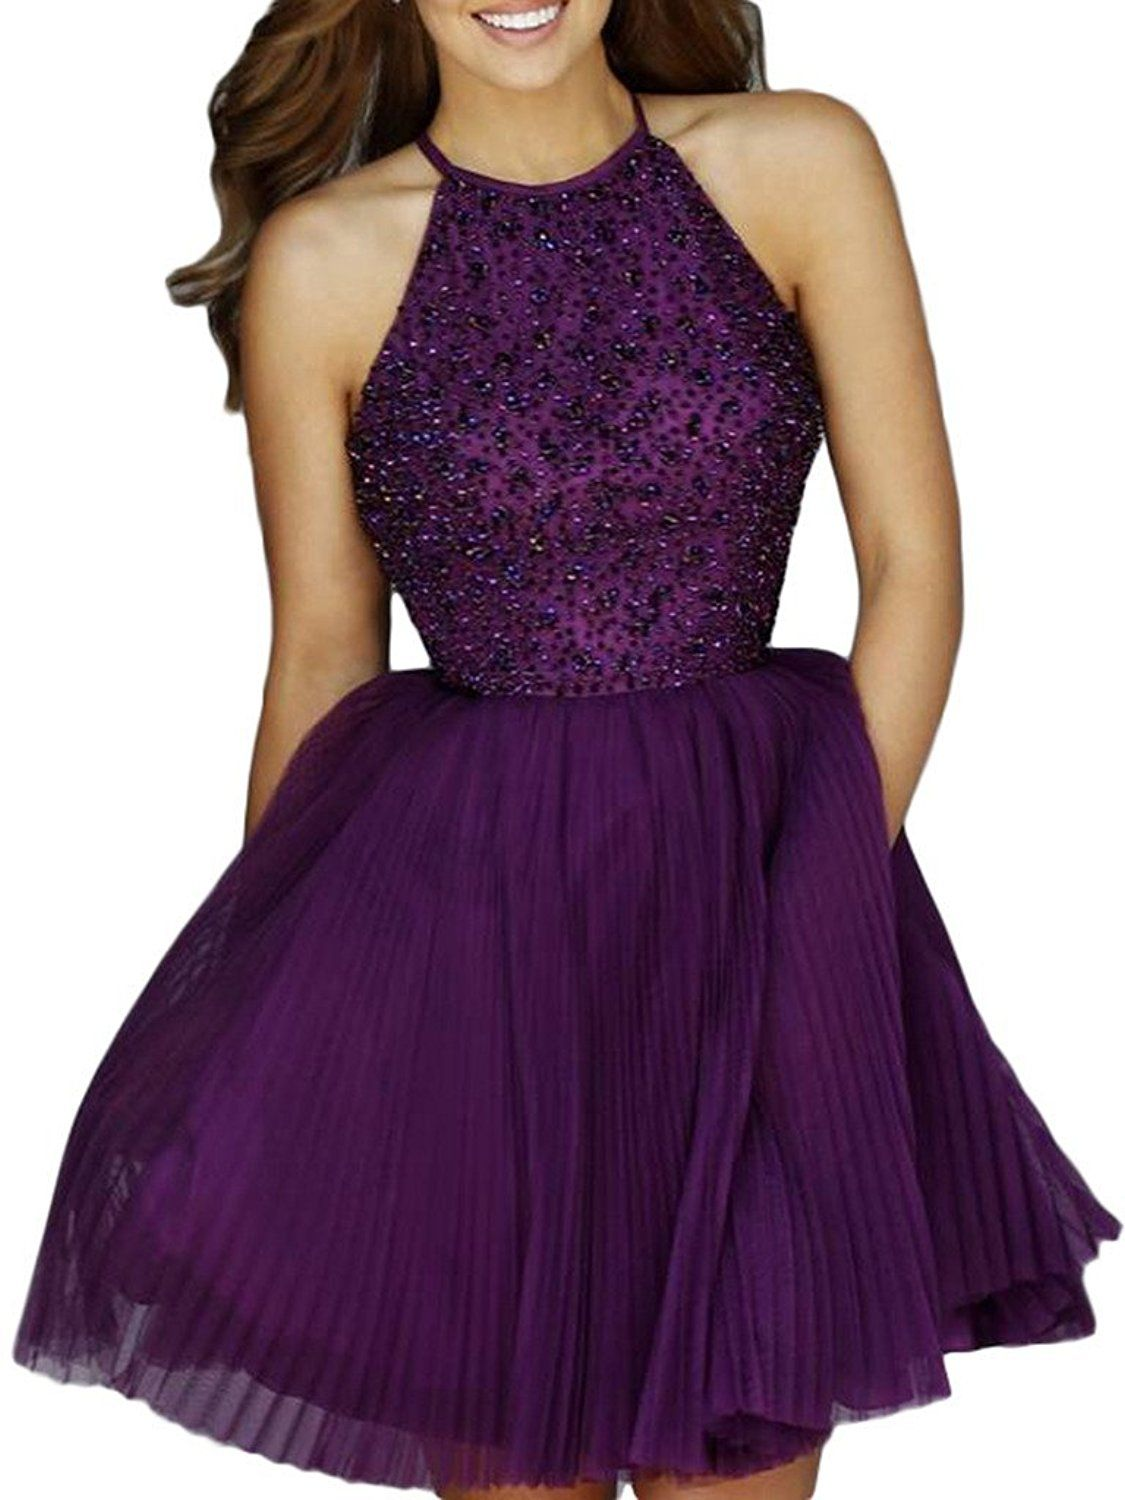 Ubridal Short Beading Keyhole Back Tulle Homecoming Dresses Prom Gowns >>> Startling review available here  : cocktail dresses